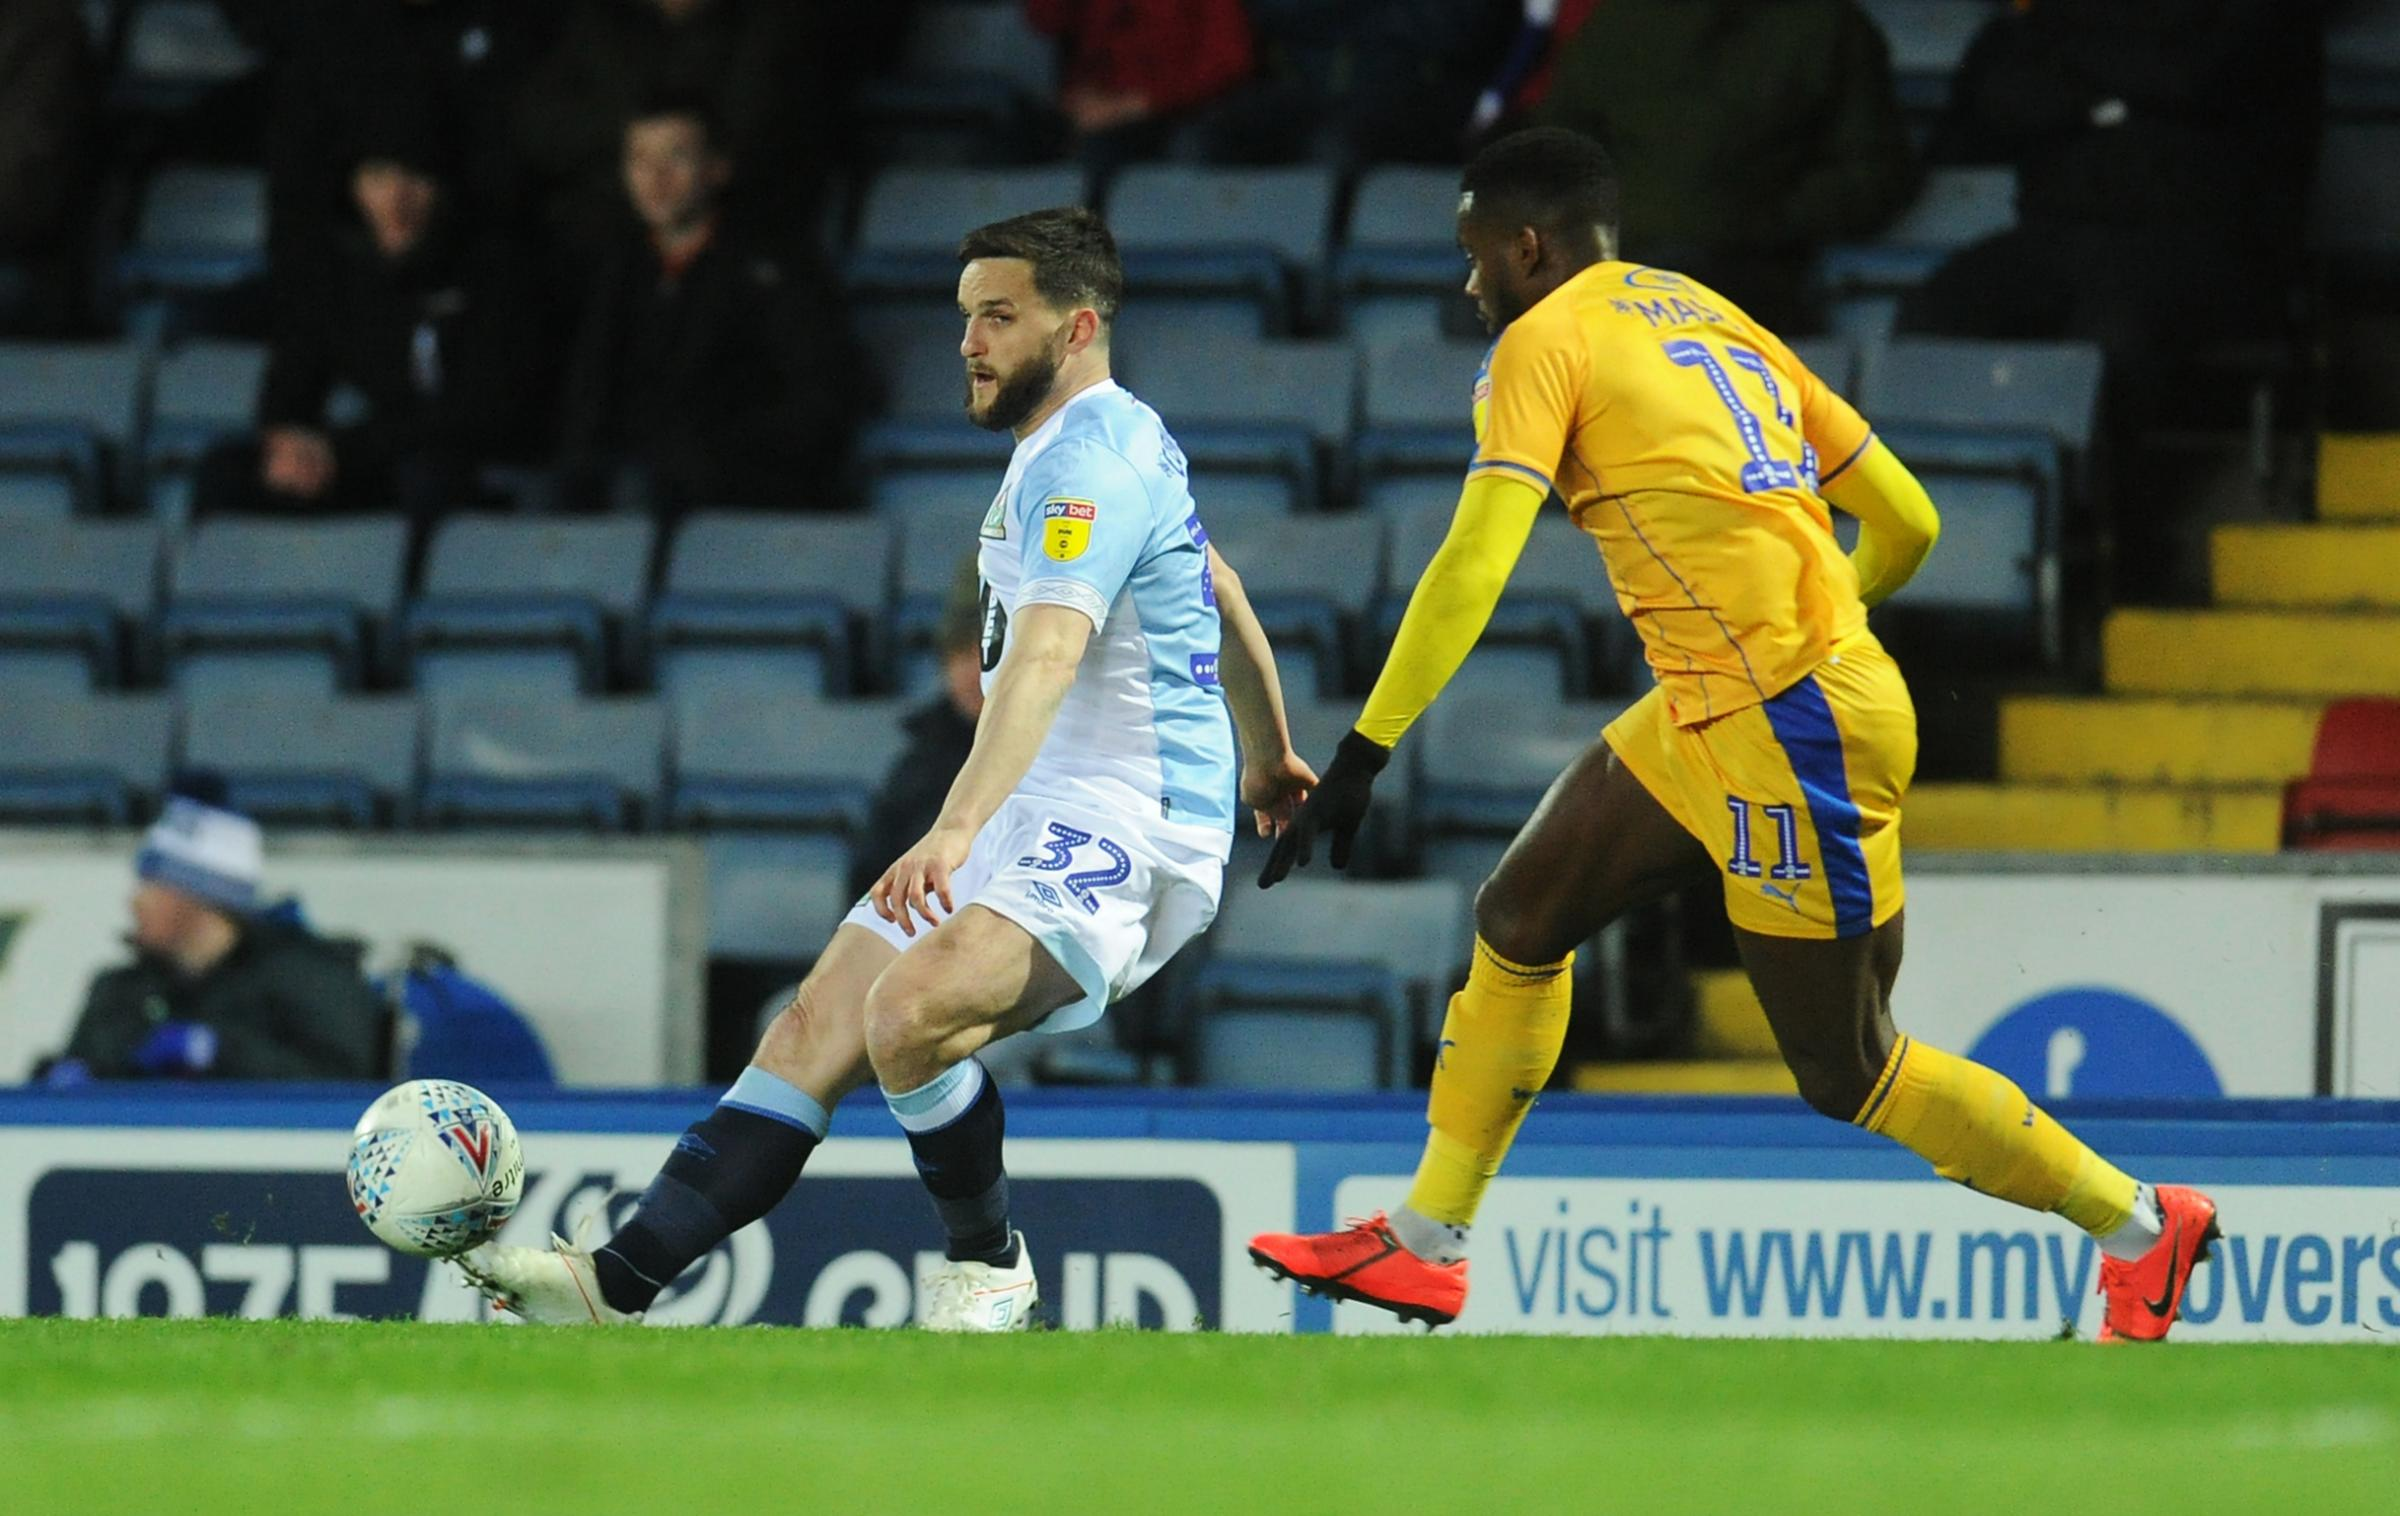 Craig Conway replaced Amari'i Bell early in the first half of Rovers' win over Wigan